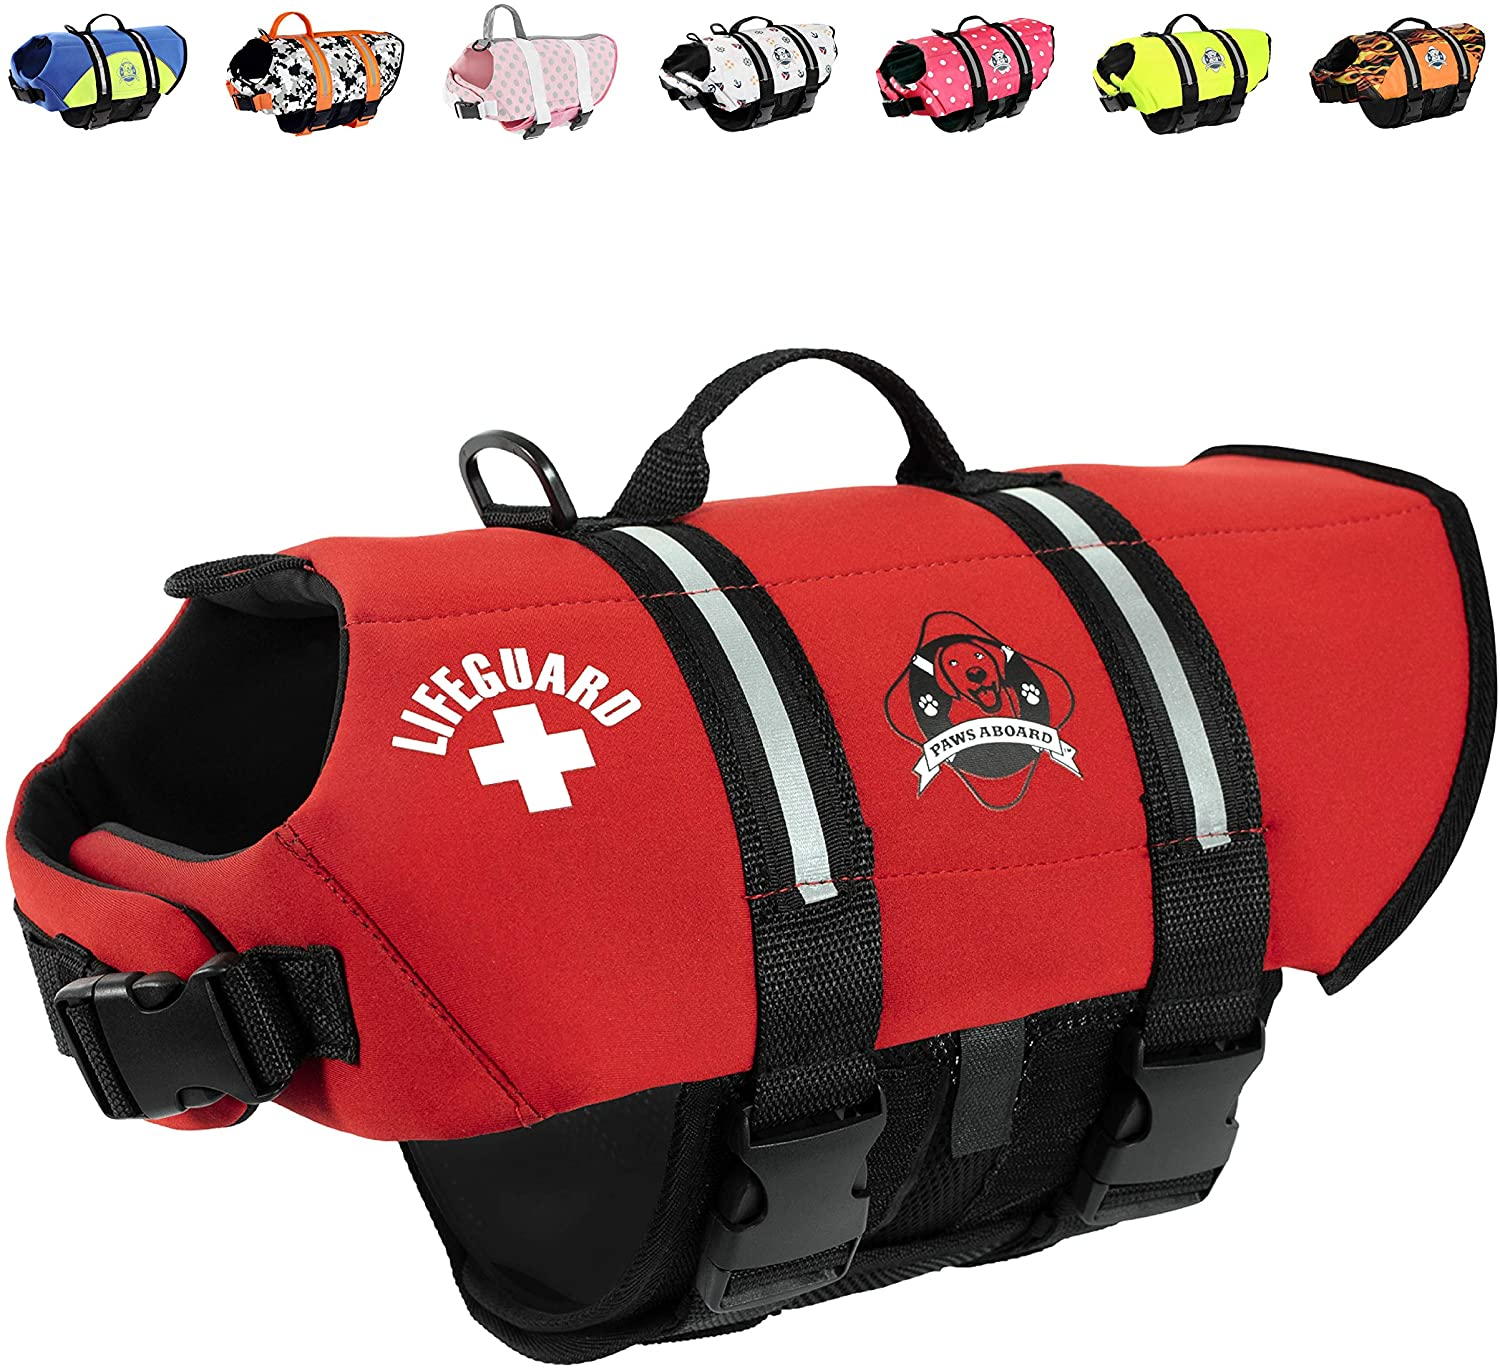 Paws Abroad Dog Life Vest